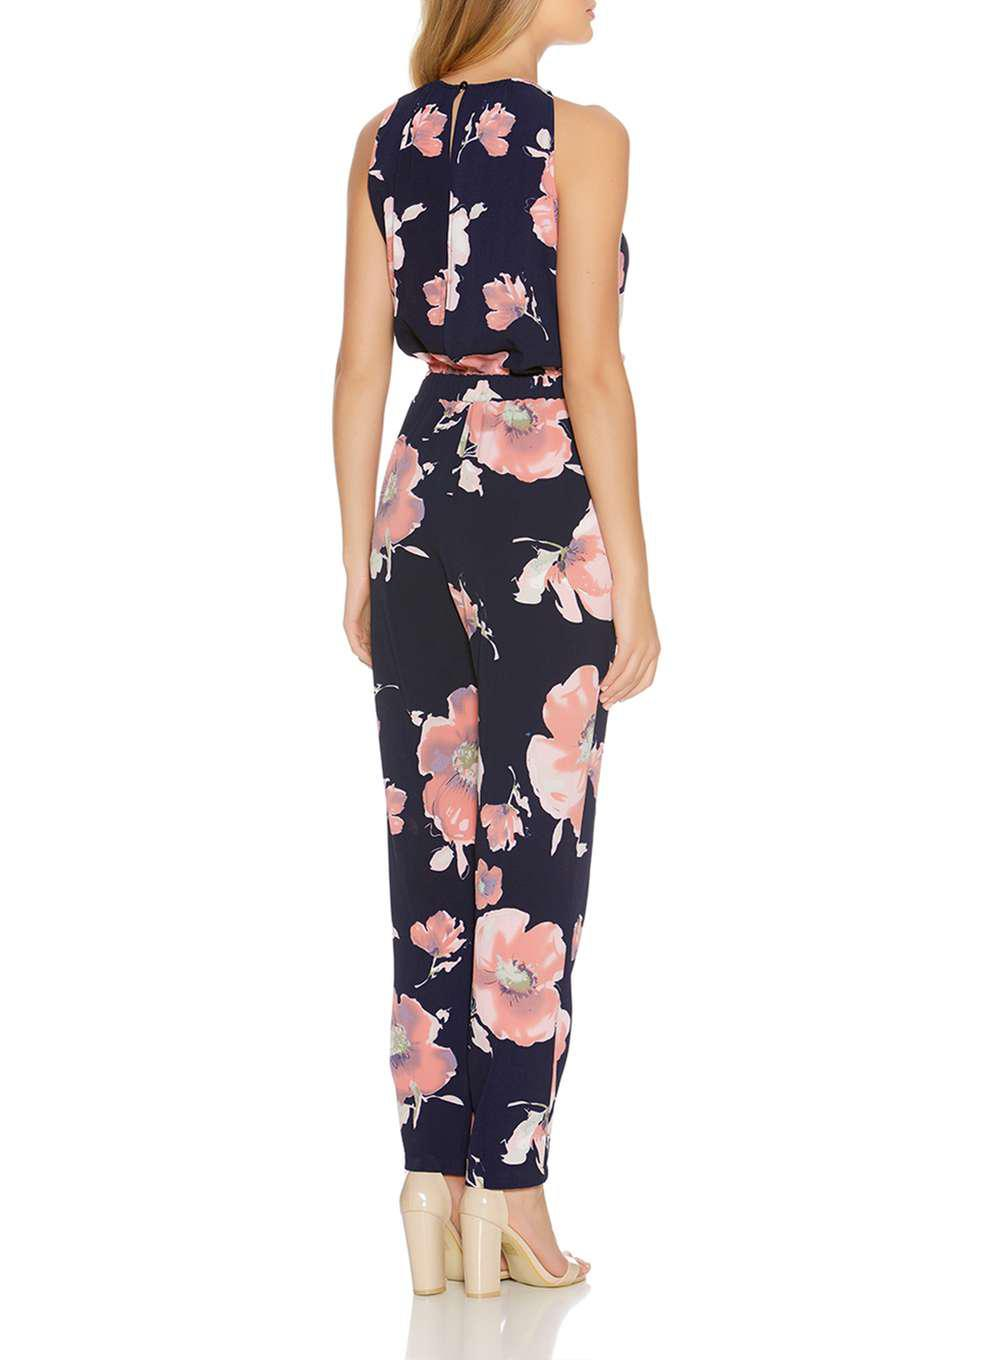 Womens Tropical Jumpsuit Dorothy Perkins Discount Exclusive Fast Shipping Cheap 2018 New Kg3e9fy